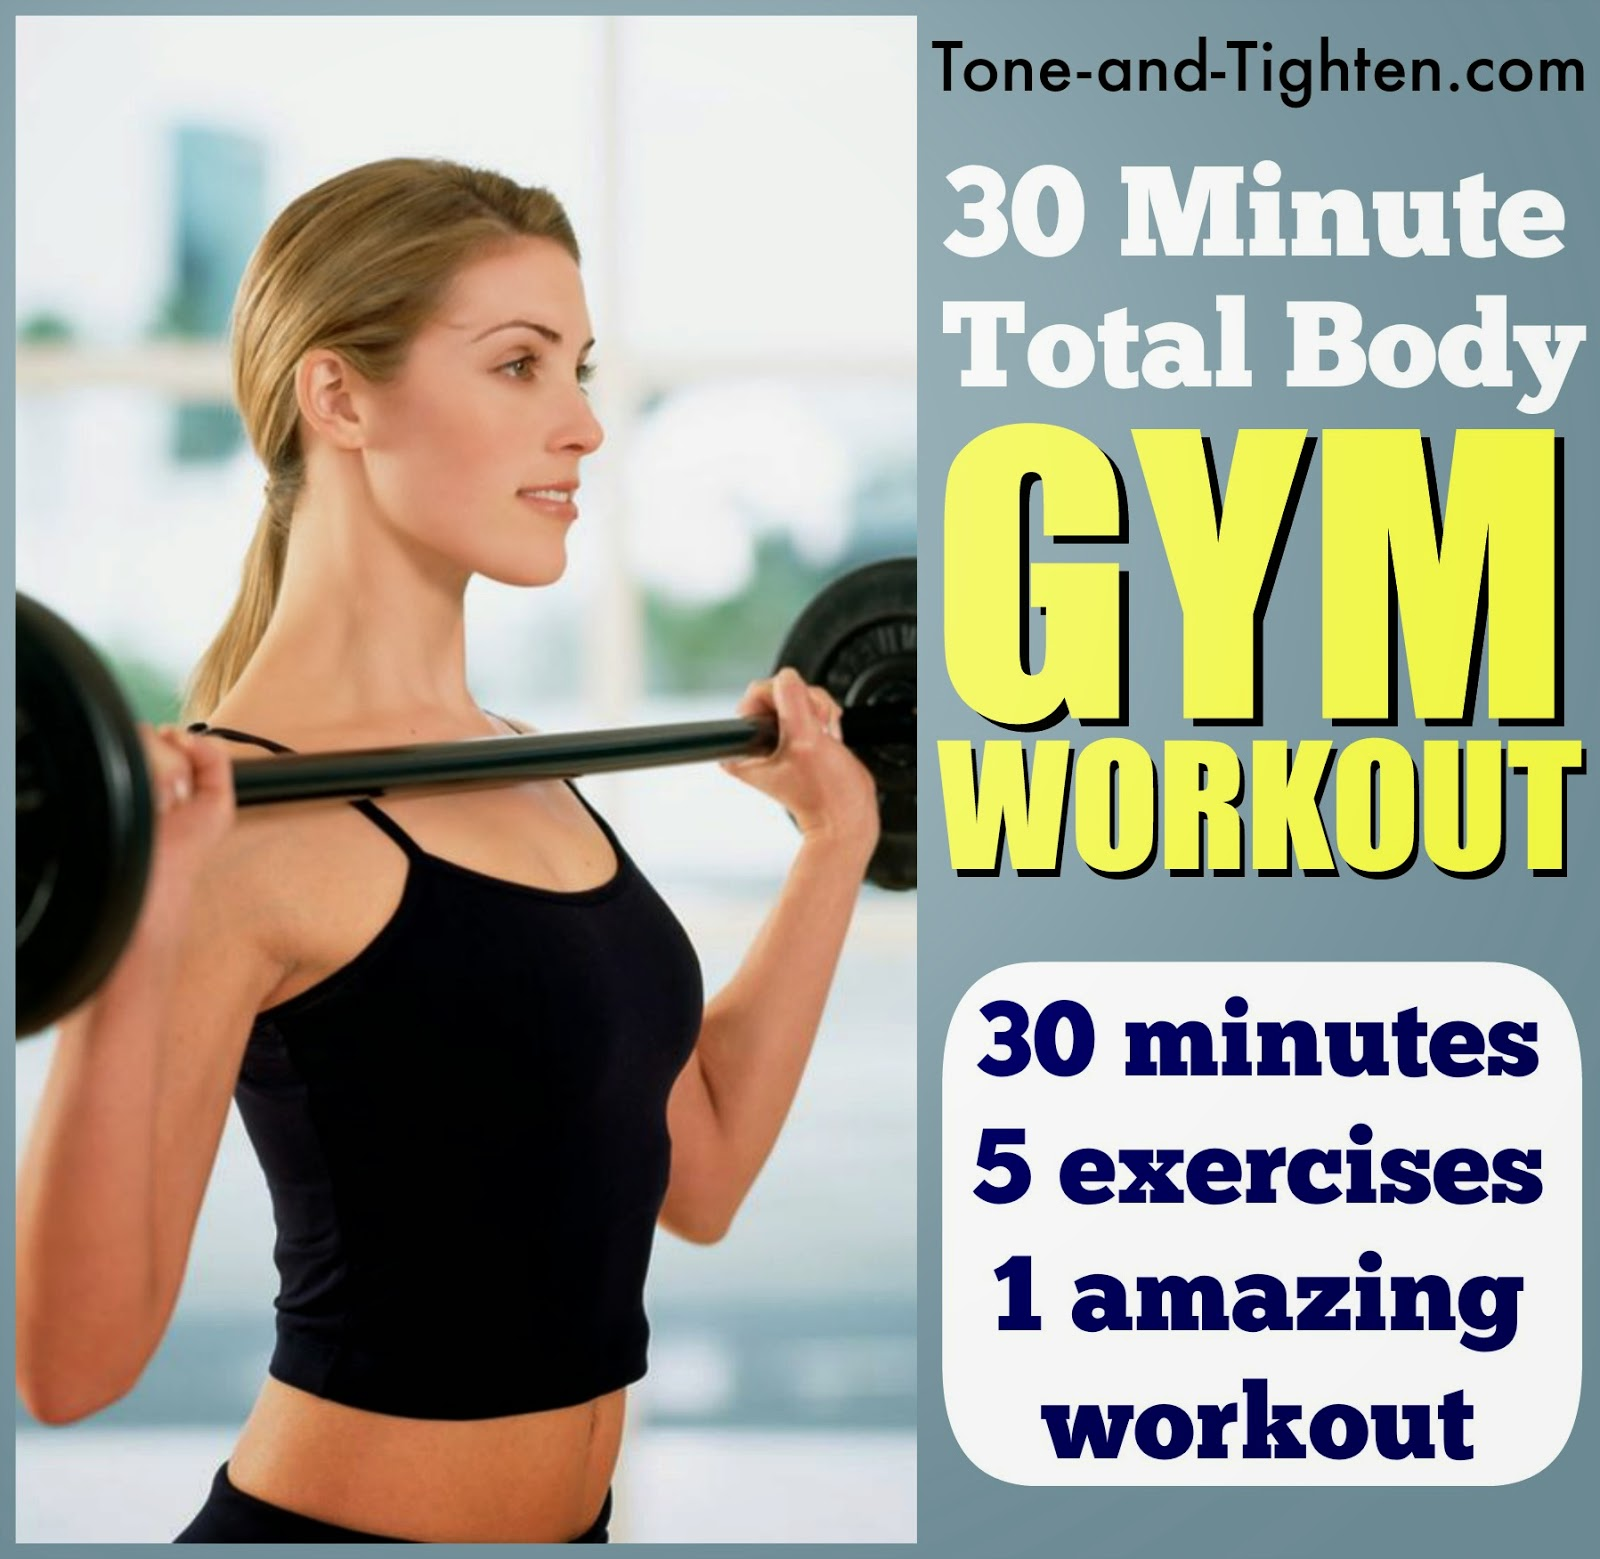 Best Workout: 30 Minute Total Body Gym Workout